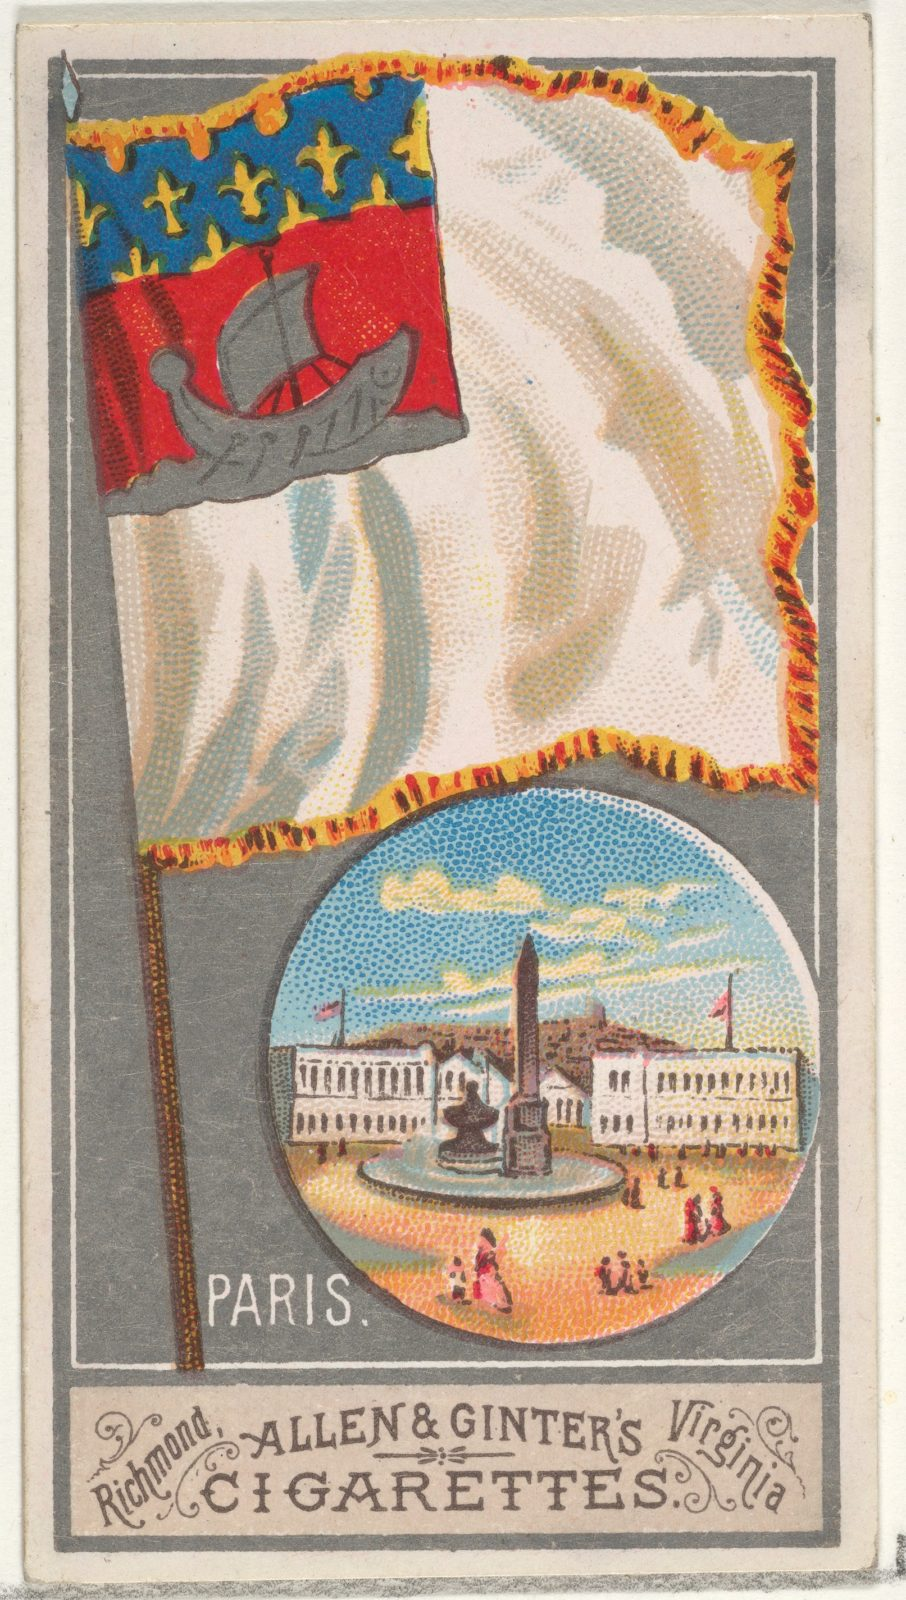 Paris, from the City Flags series (N6) for Allen & Ginter Cigarettes Brands